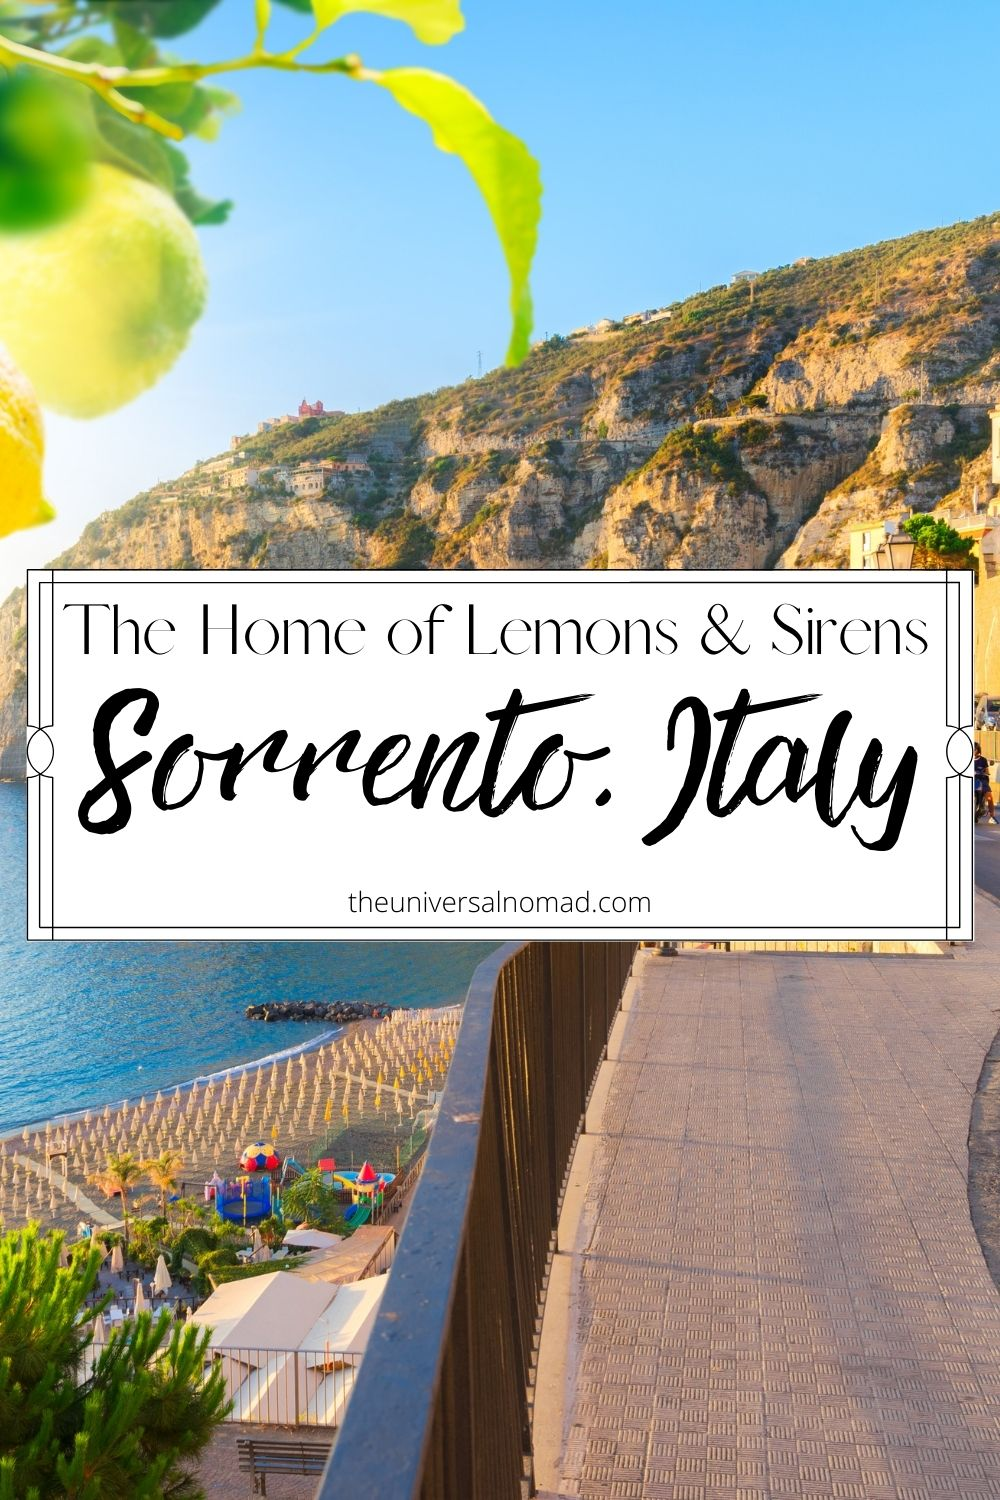 Sorrento, Italy the home of lemons and sirens